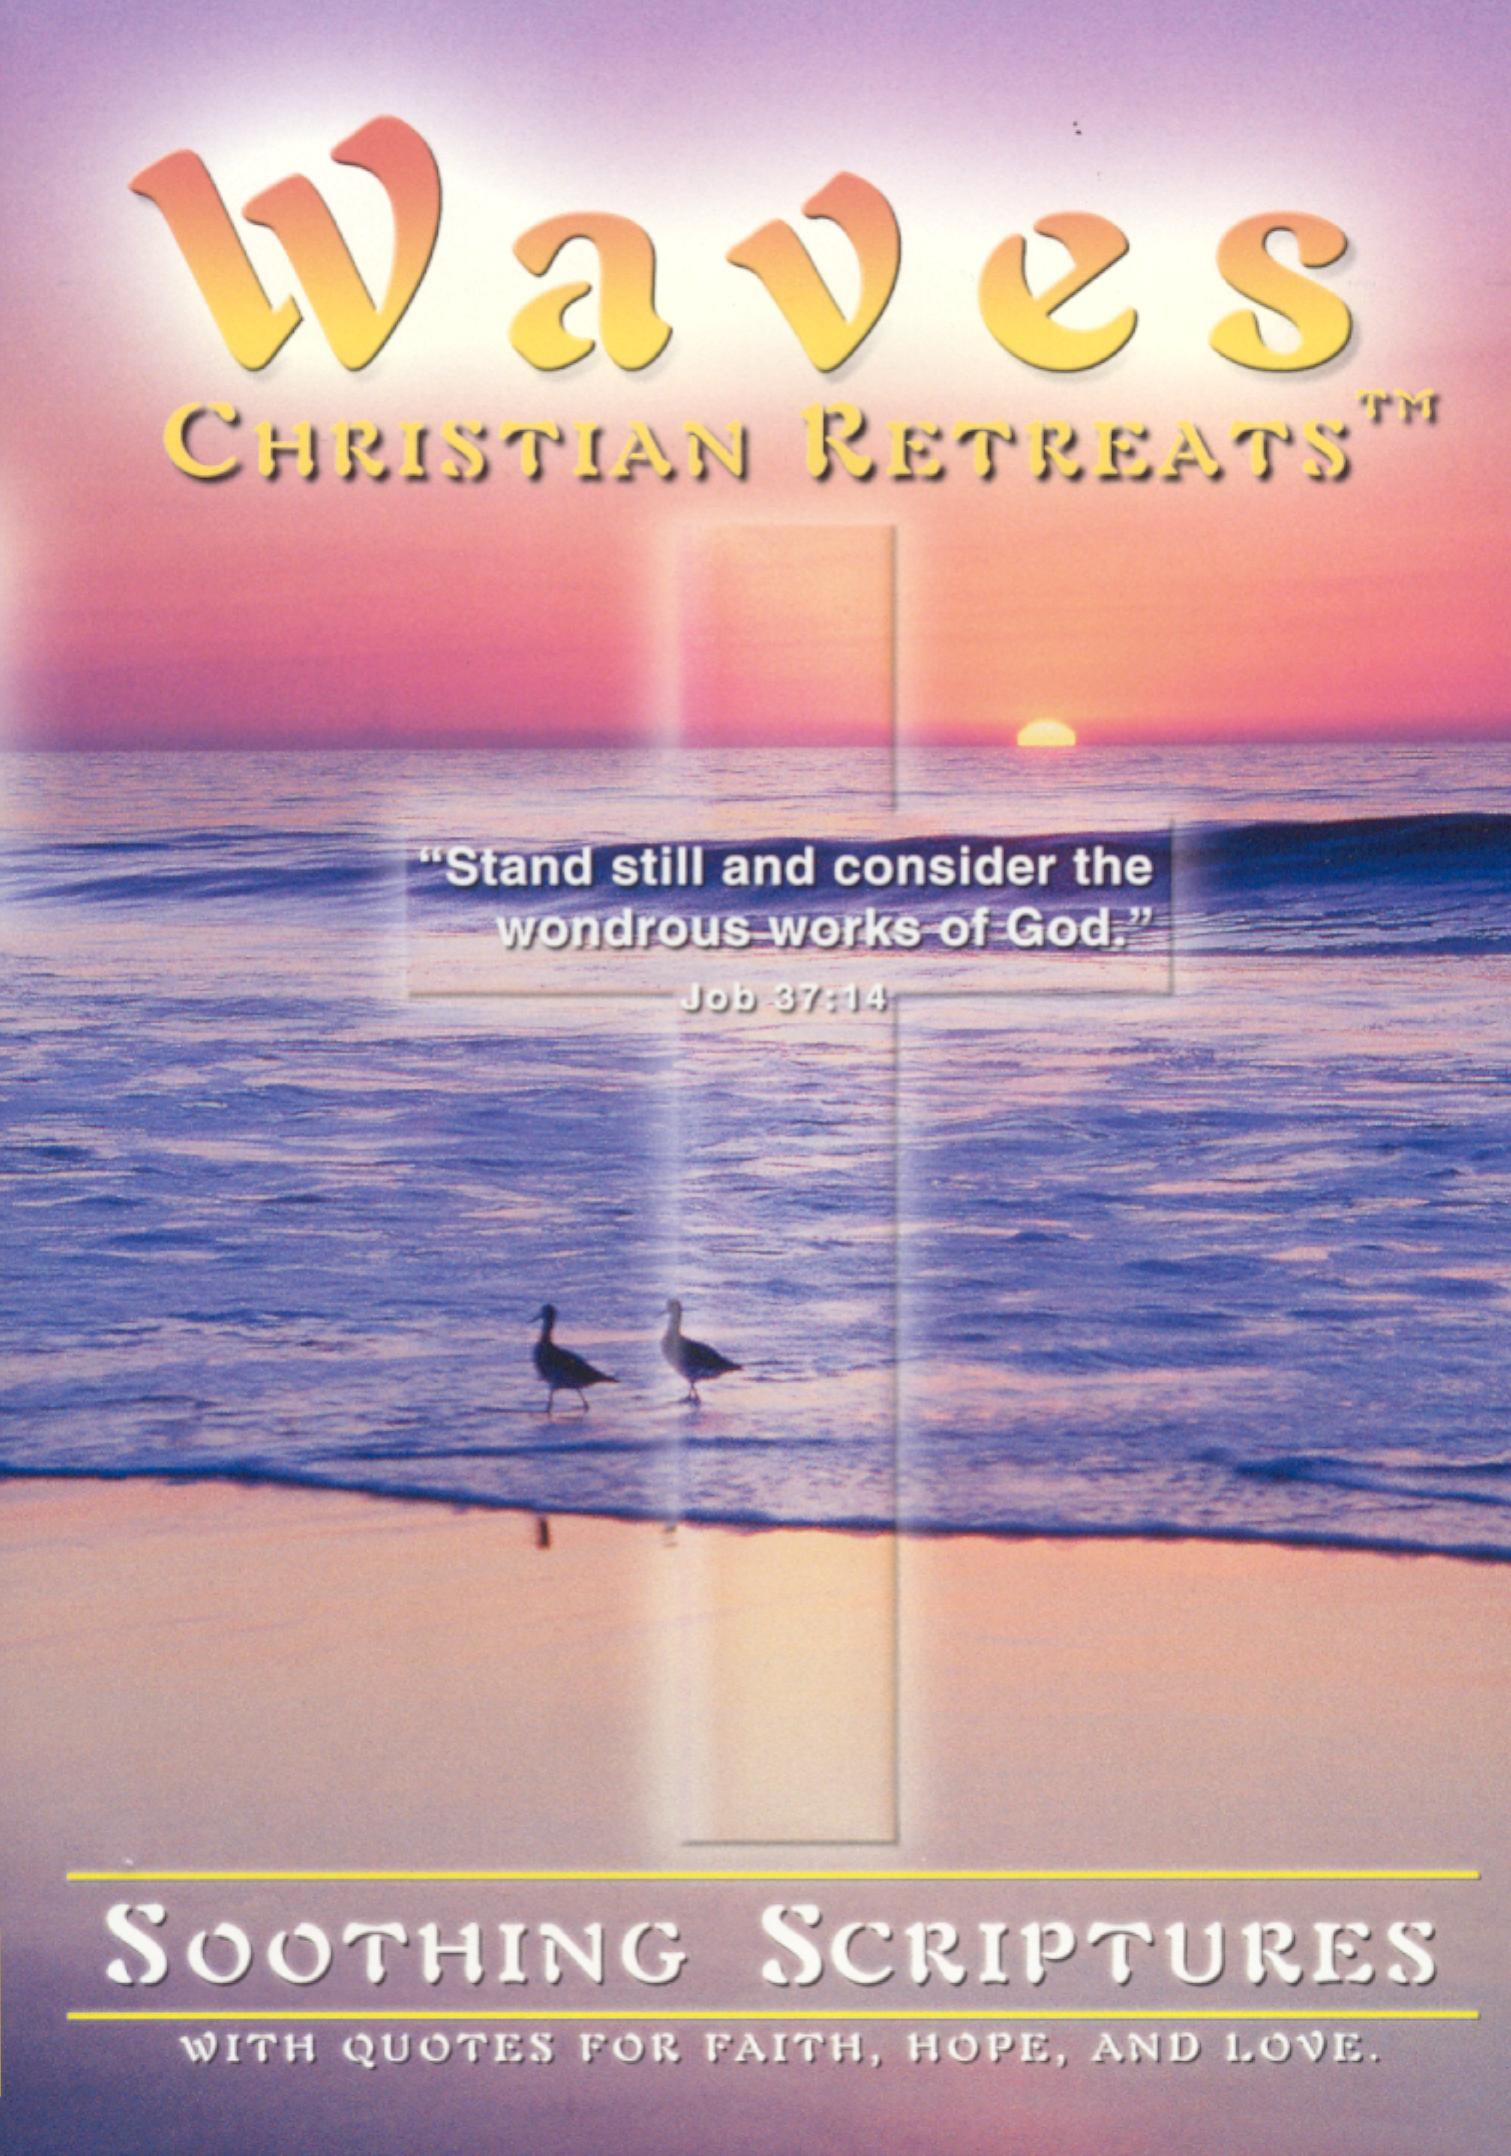 Waves: Christian Retreats - Soothing Scriptures